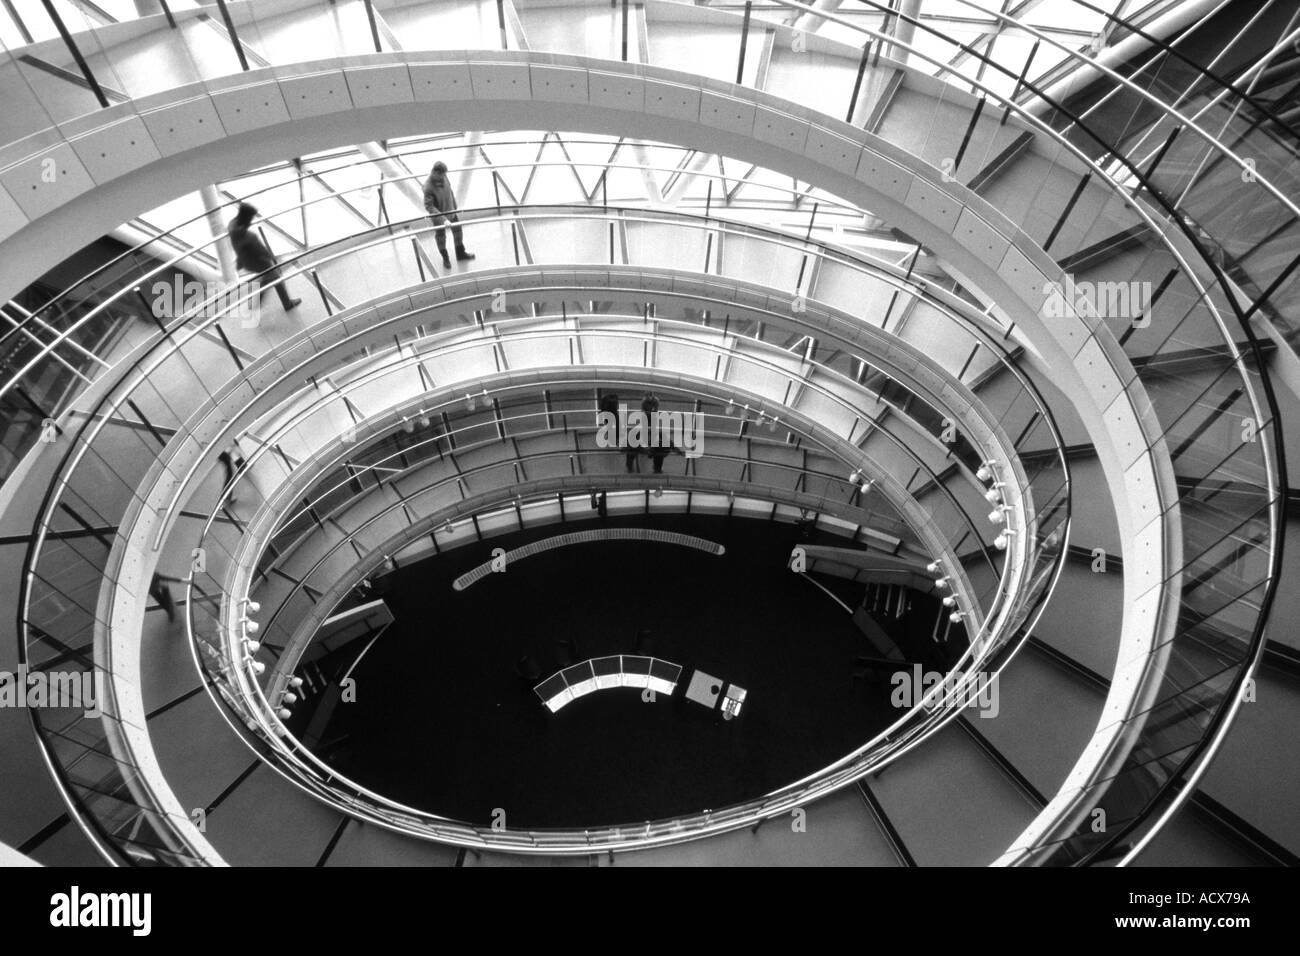 London assembly Building, Mayor of London offices. - Stock Image